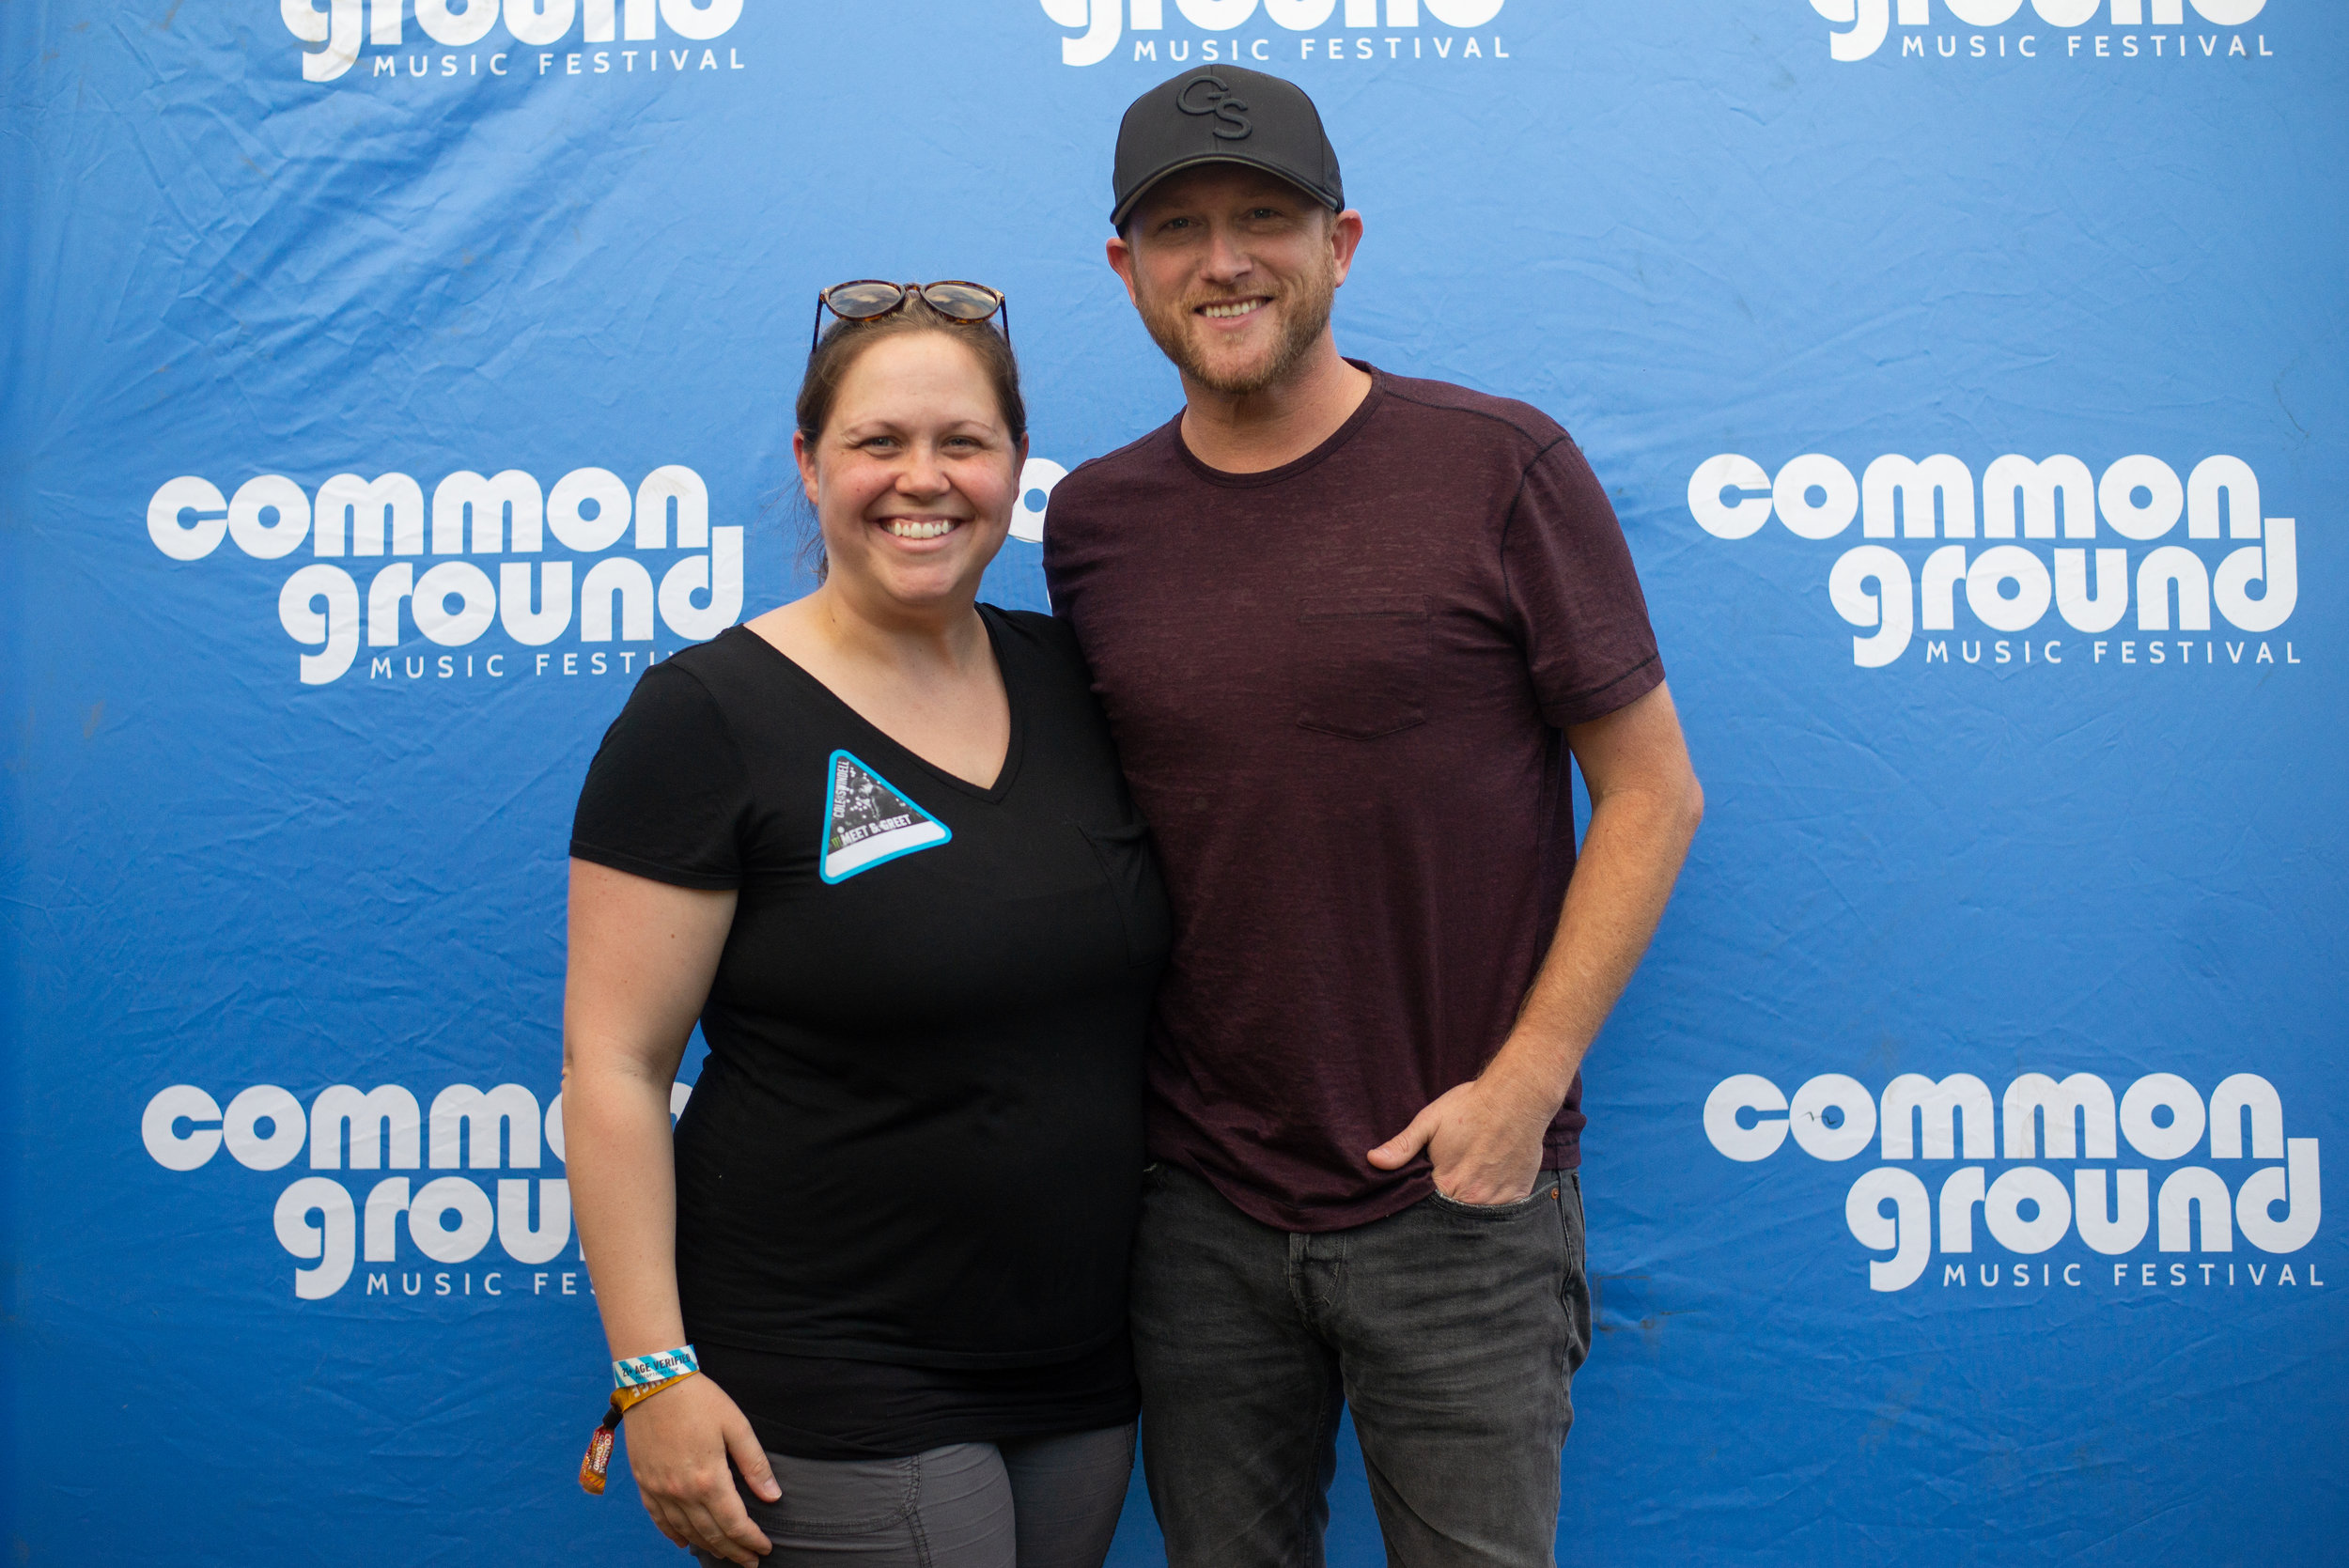 Claire Abendroth_Meet&Greet_ColeSwindell-04.jpg